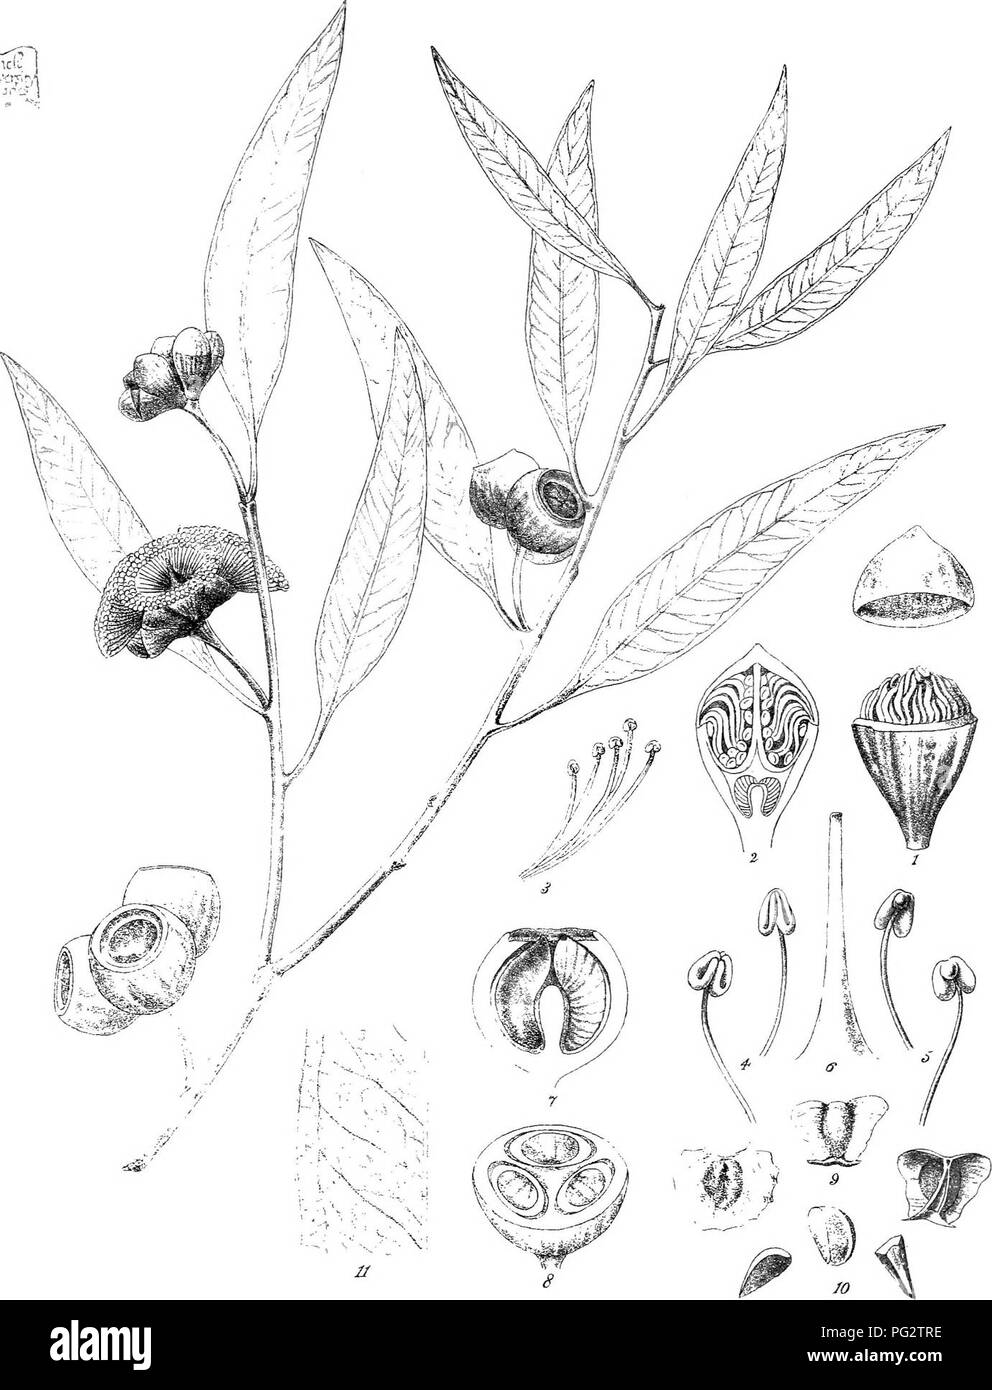 """. Eucalyptographia. A descriptive atlas of the eucalypts of Australia and the adjoining islands;. Eucalyptus; Botany. Toa.del.Cftoedel FvM.direxil. Steaim. Lltho Gov Pr!p':>.50 ^'-?'""""-et li©%]pte MiaiML./M/^. Please note that these images are extracted from scanned page images that may have been digitally enhanced for readability - coloration and appearance of these illustrations may not perfectly resemble the original work.. Mueller, Ferdinand von, 1825-1896. Melbourne, J. Ferres, Govt. Print; [etc. ,etc. ] - Stock Image"""